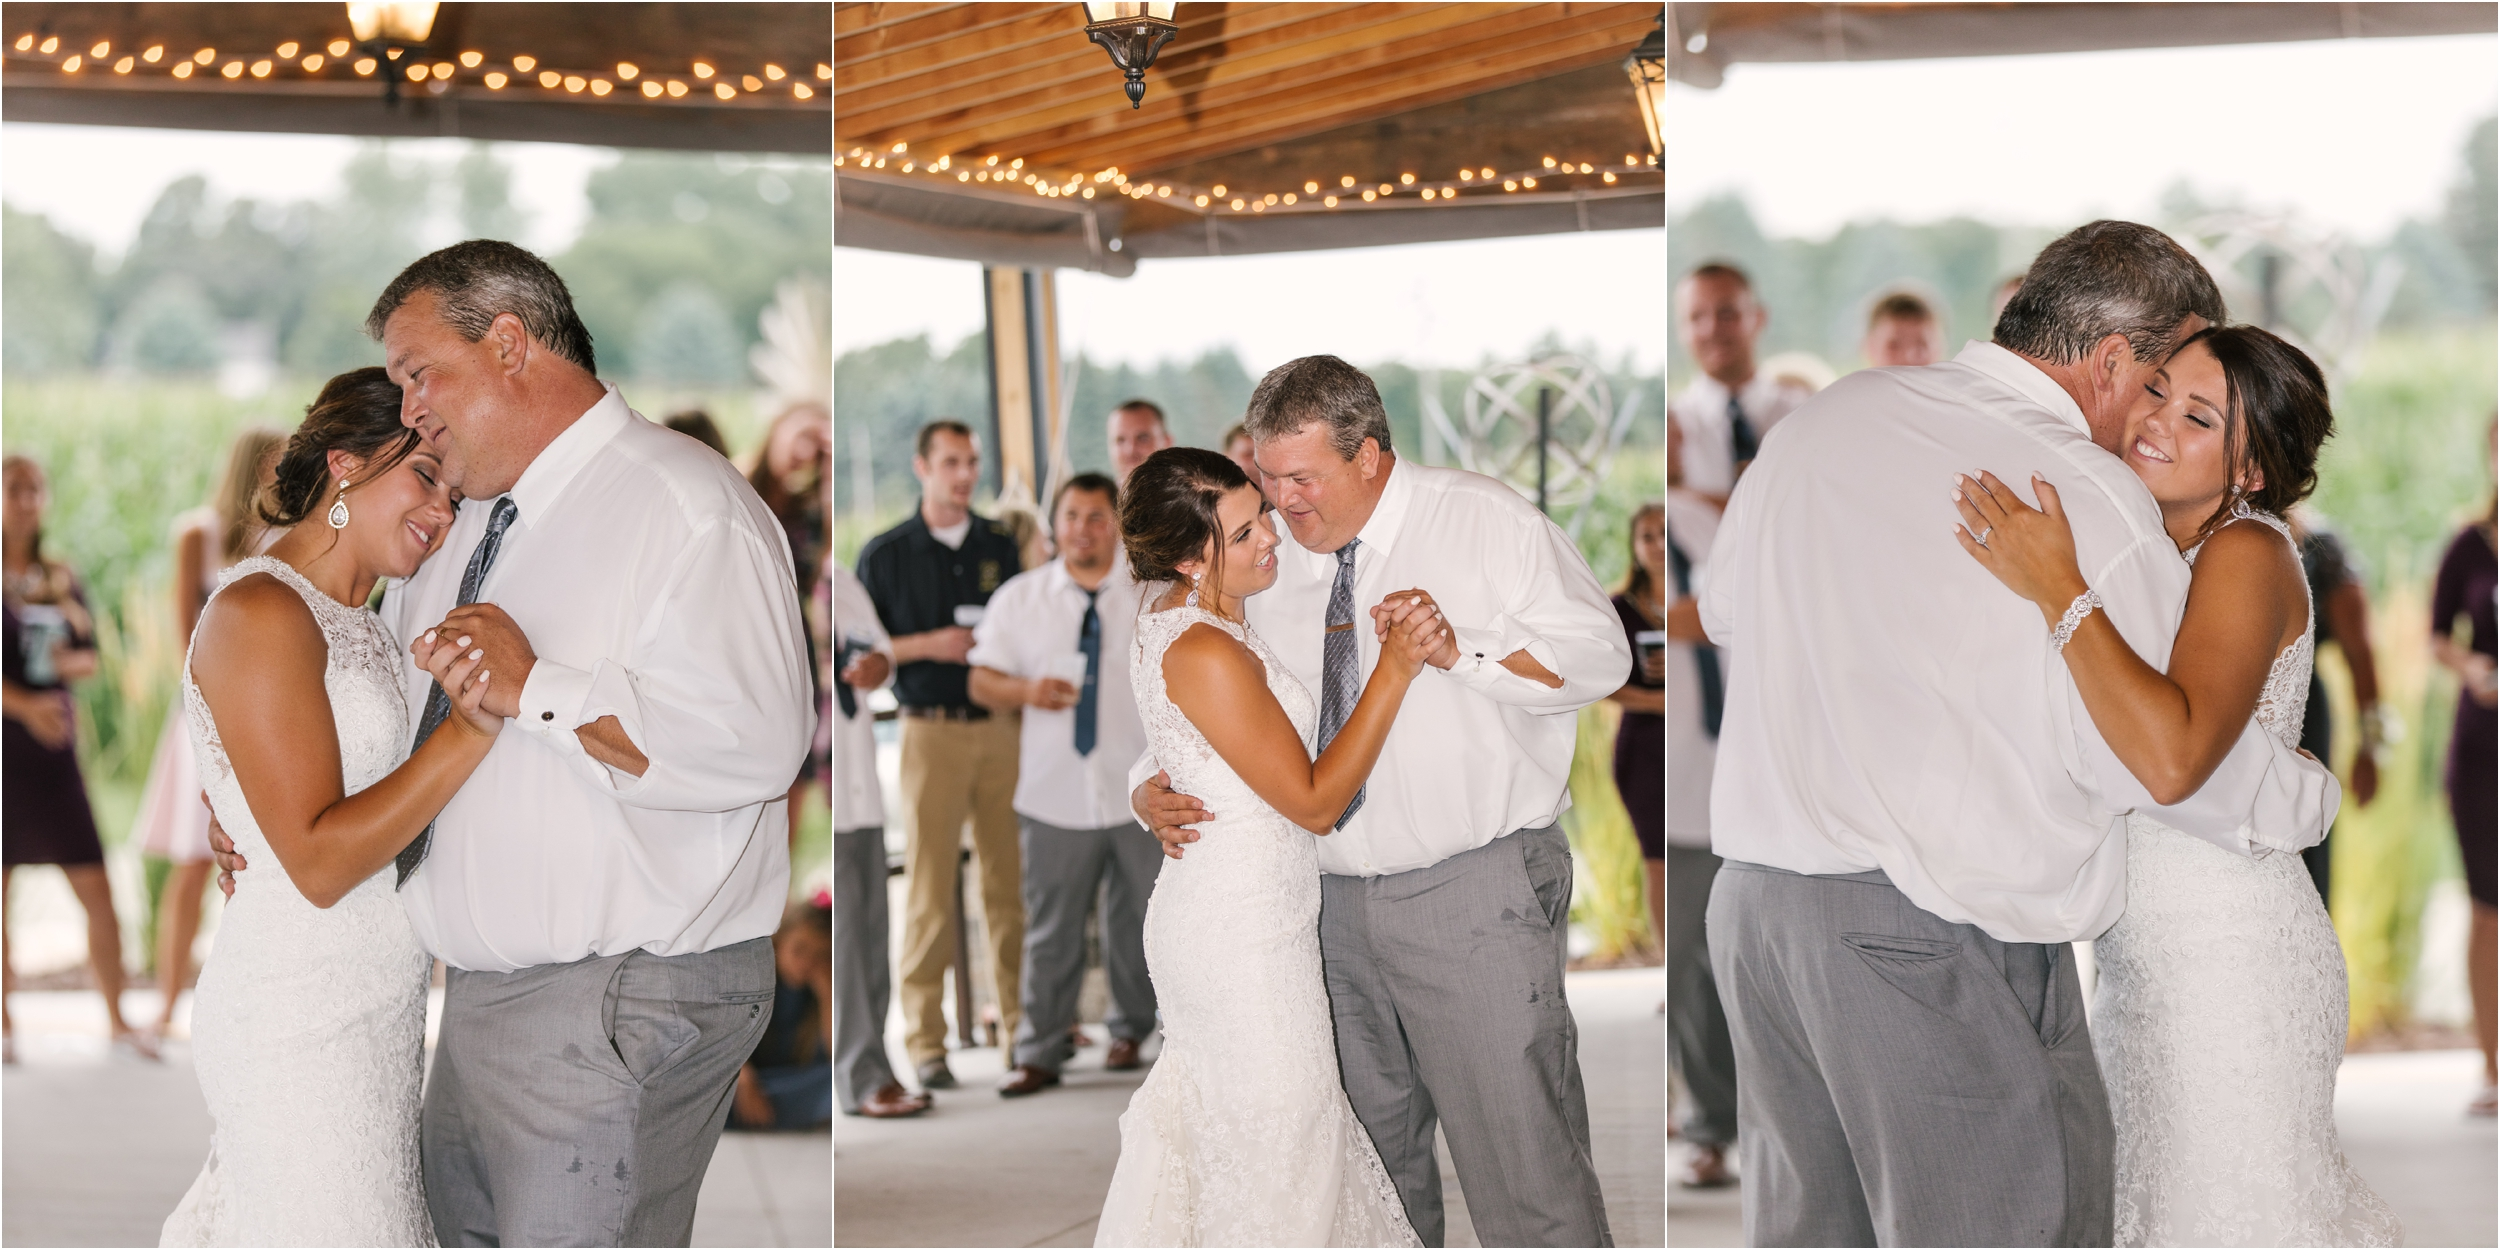 OakViewEvents_CountrysideWedding_MidwestWedding_0047.jpg